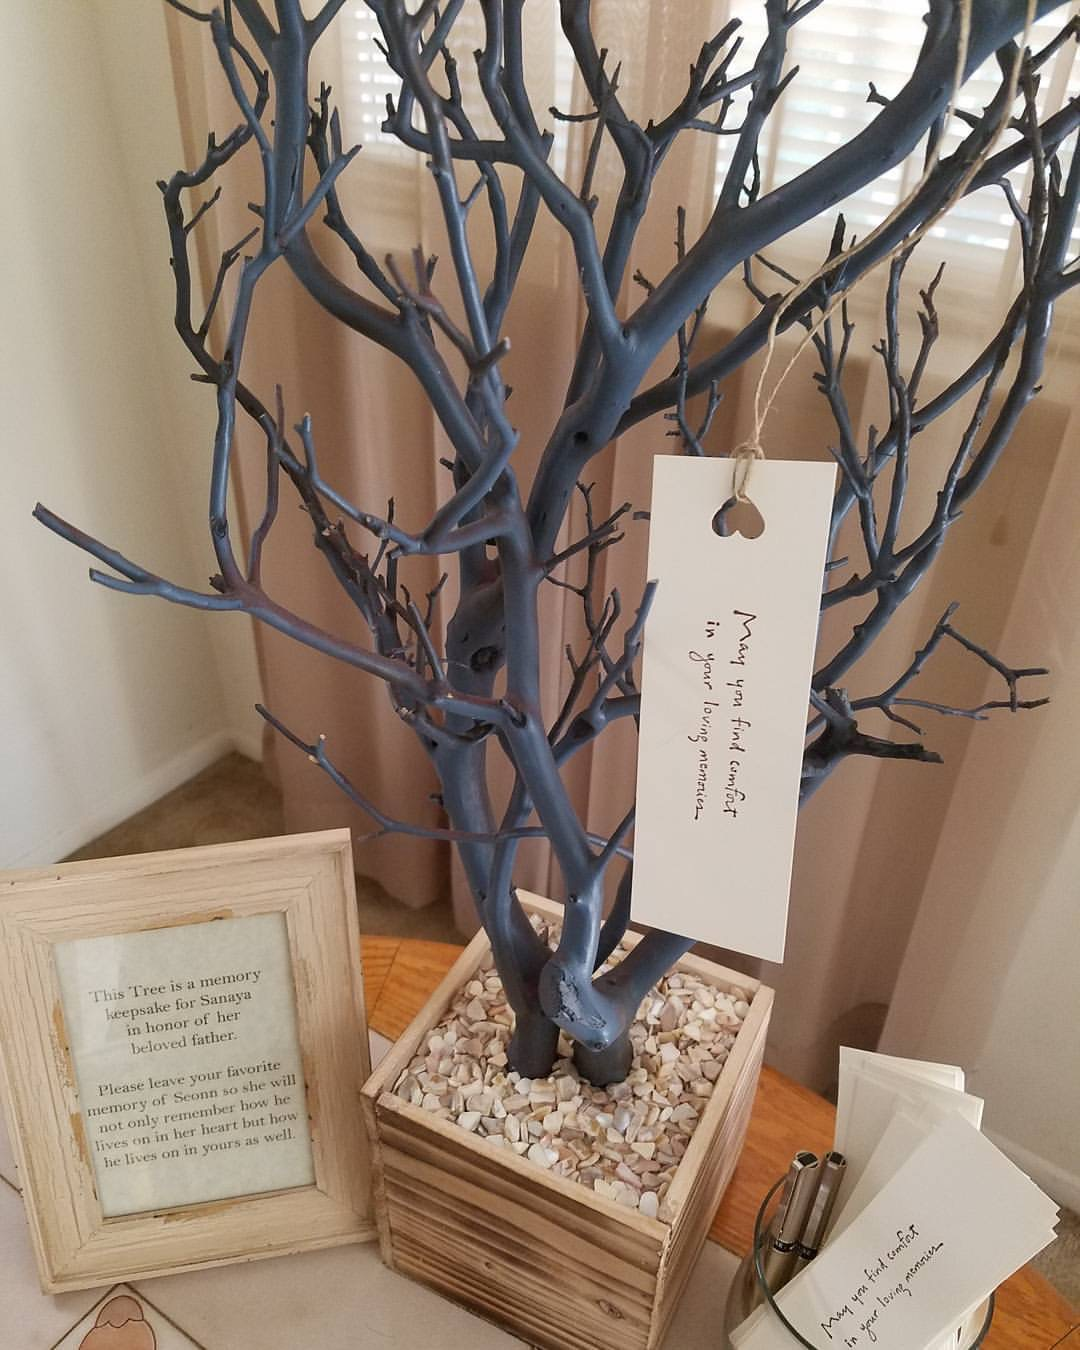 blue and naural themed memory tree